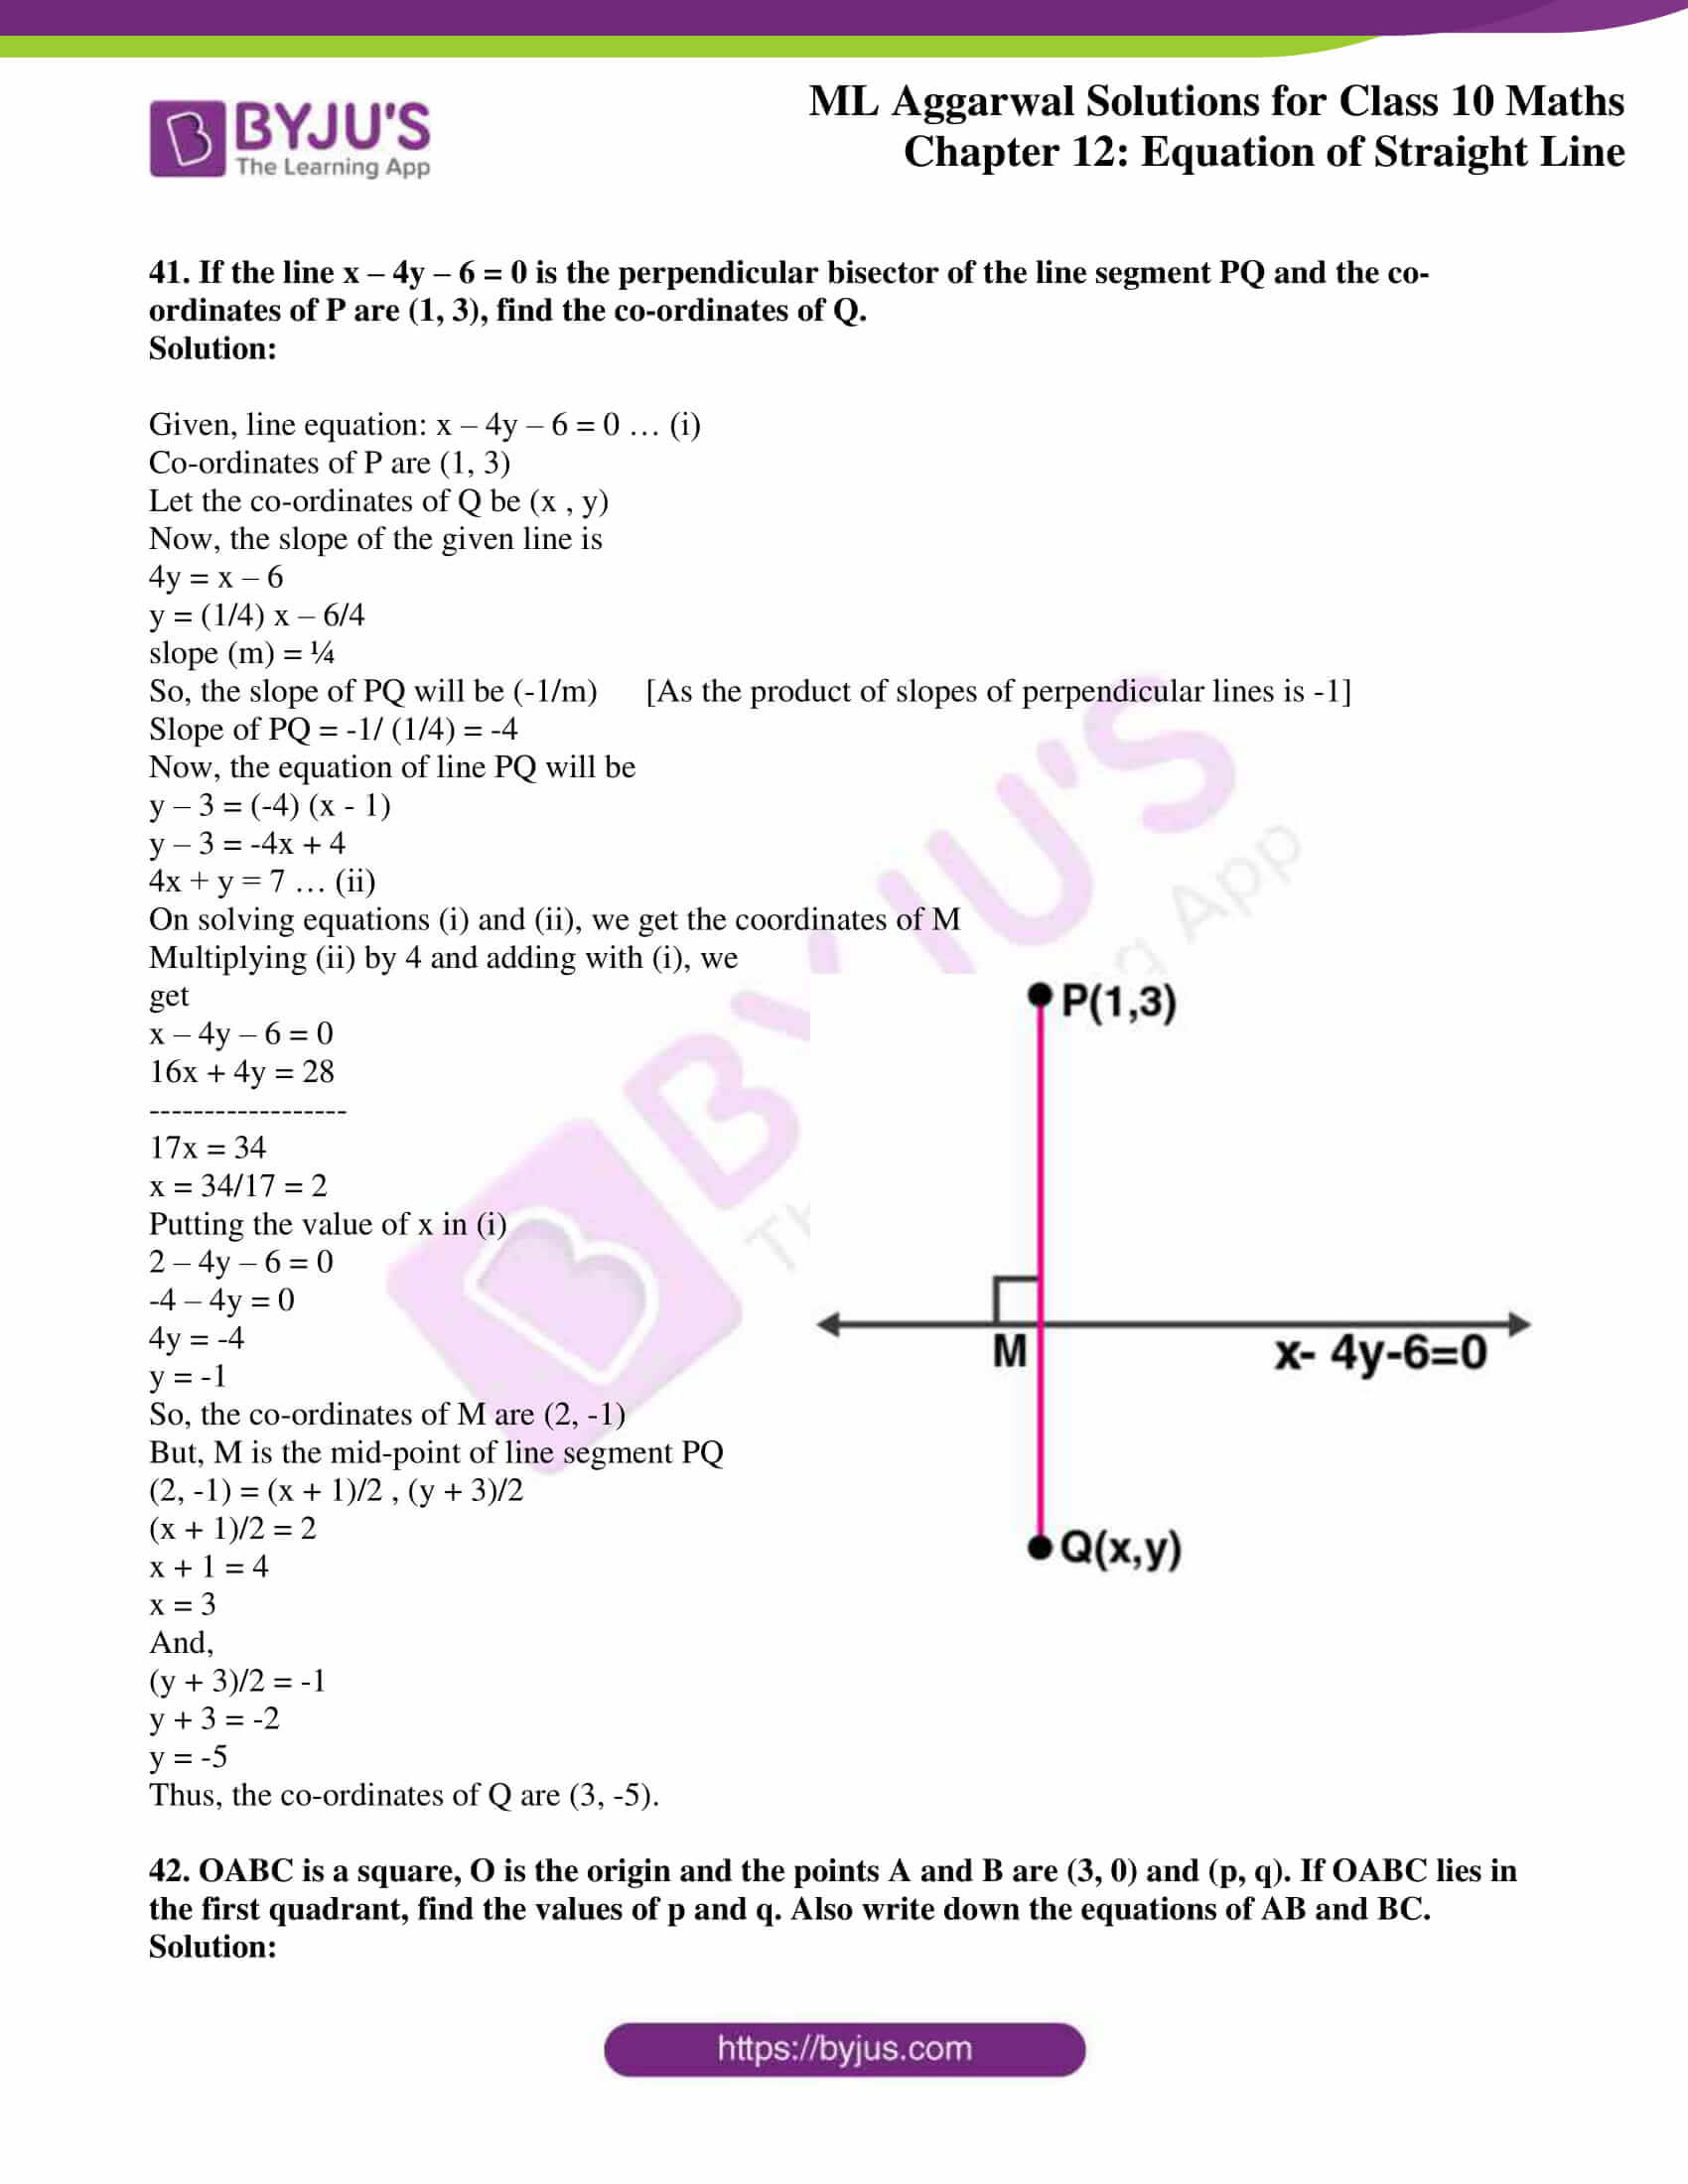 ml aggarwal solutions for class 10 maths chapter 12 34